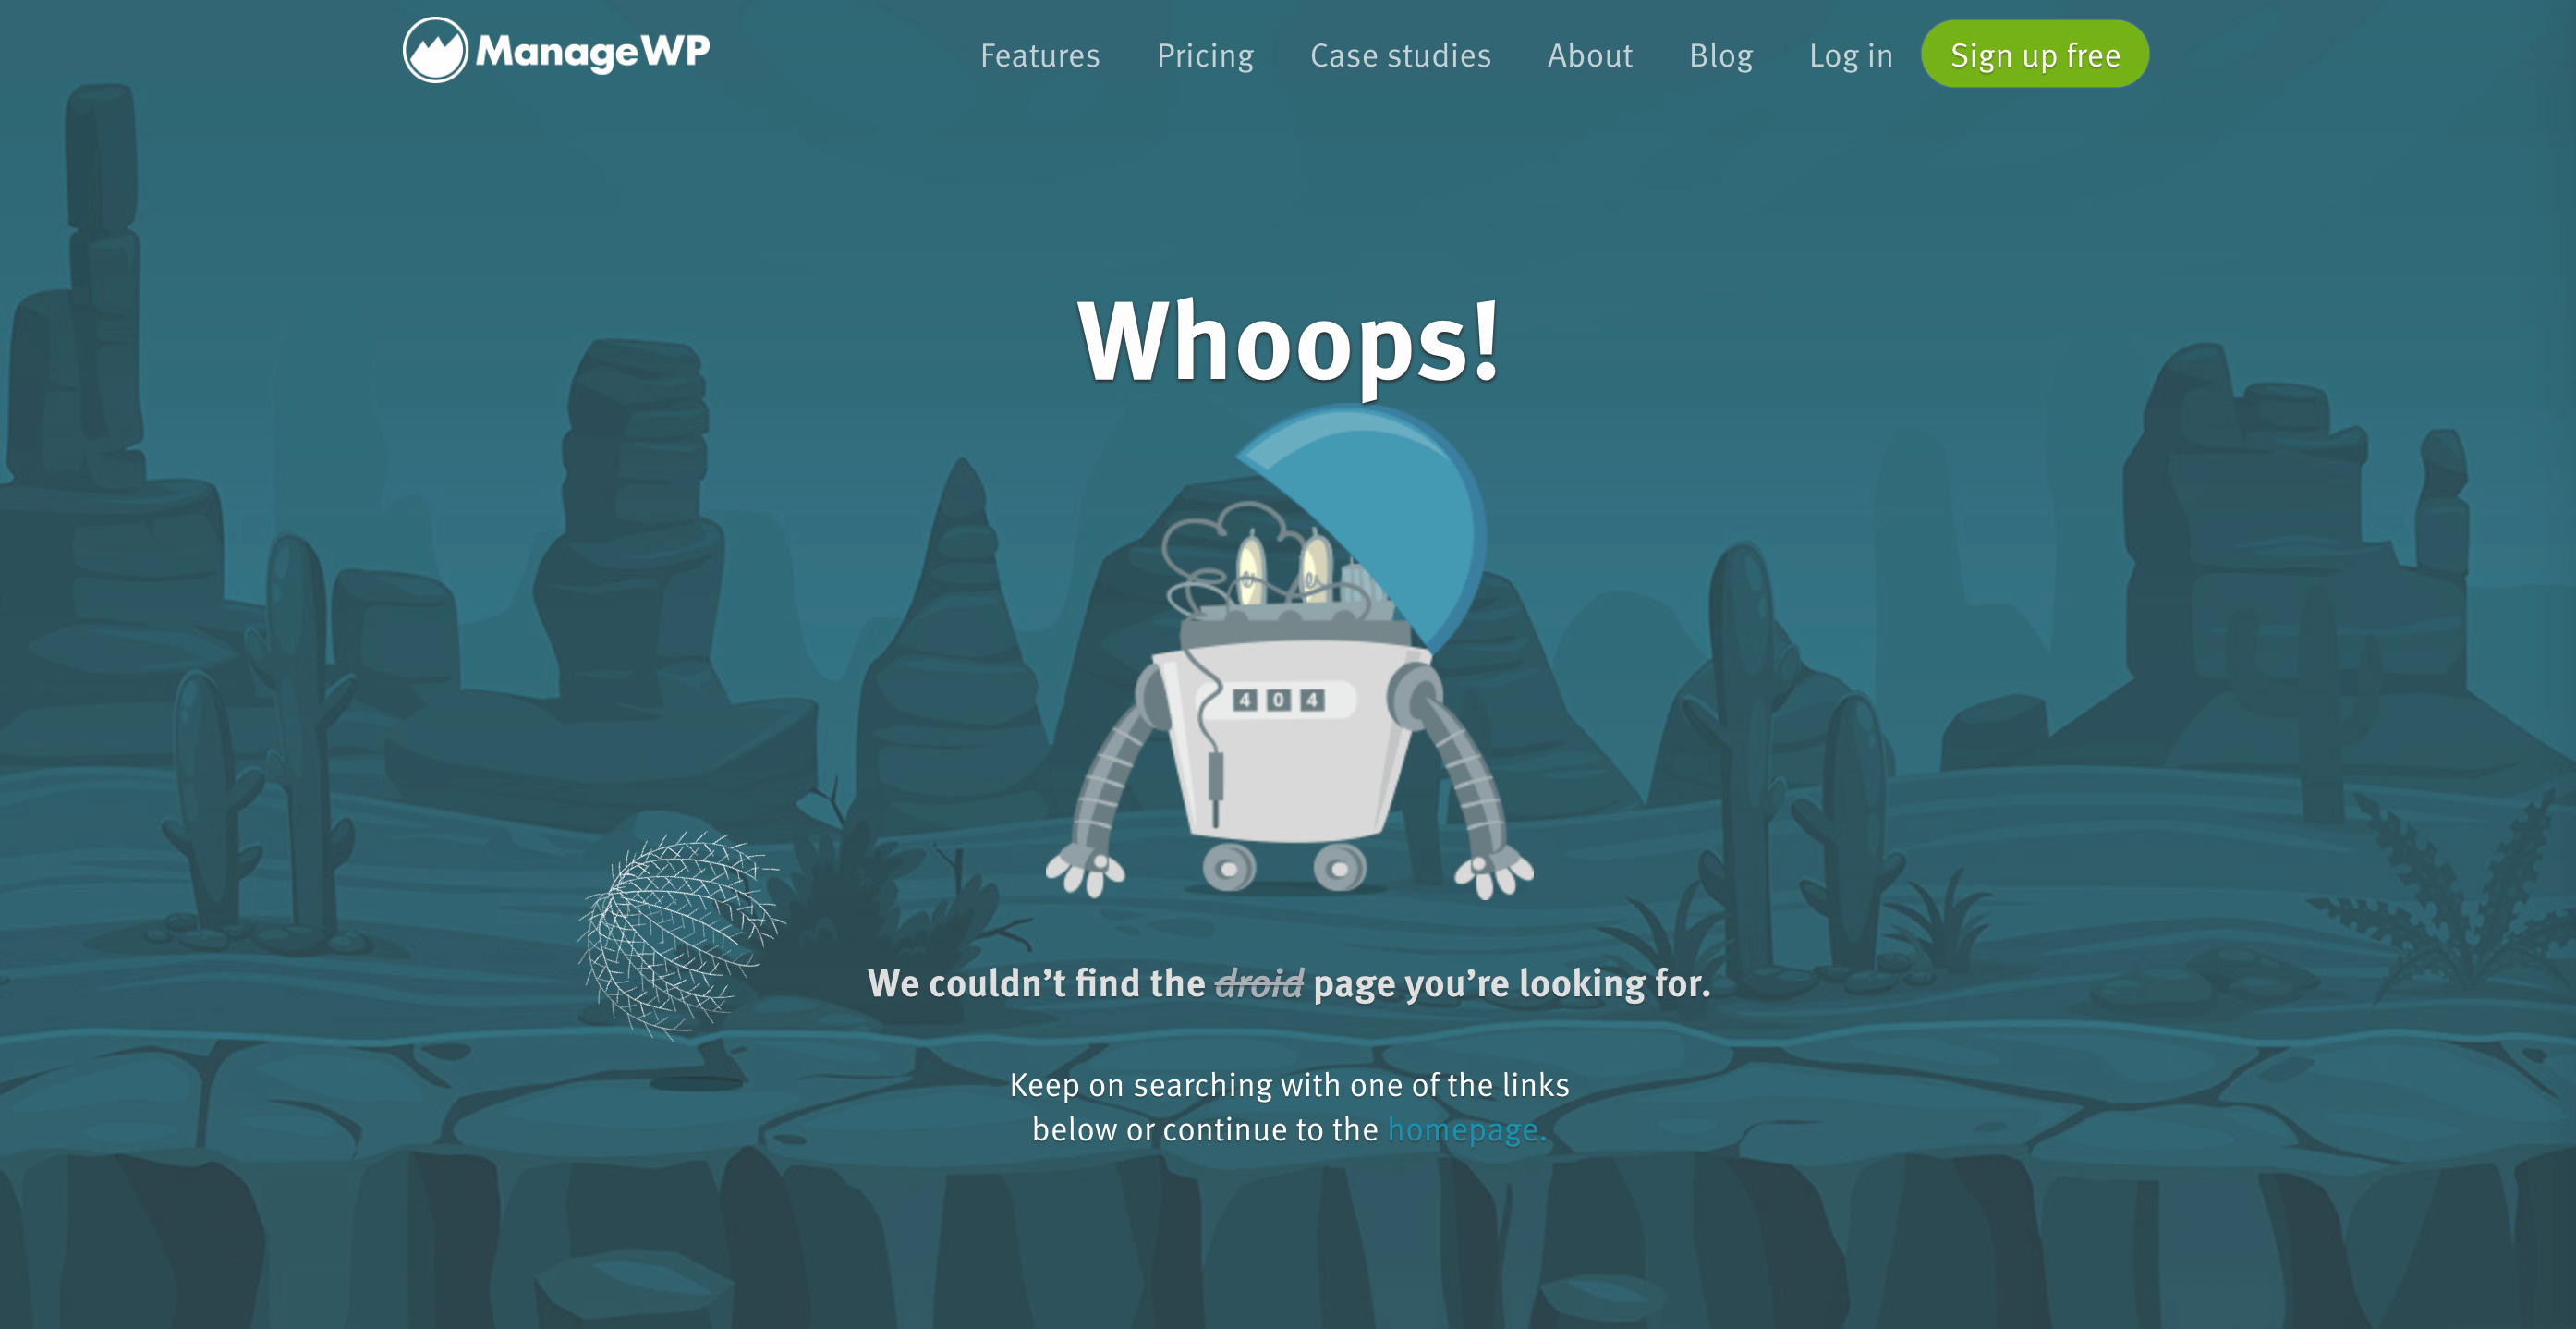 The ManageWP 404 error page.